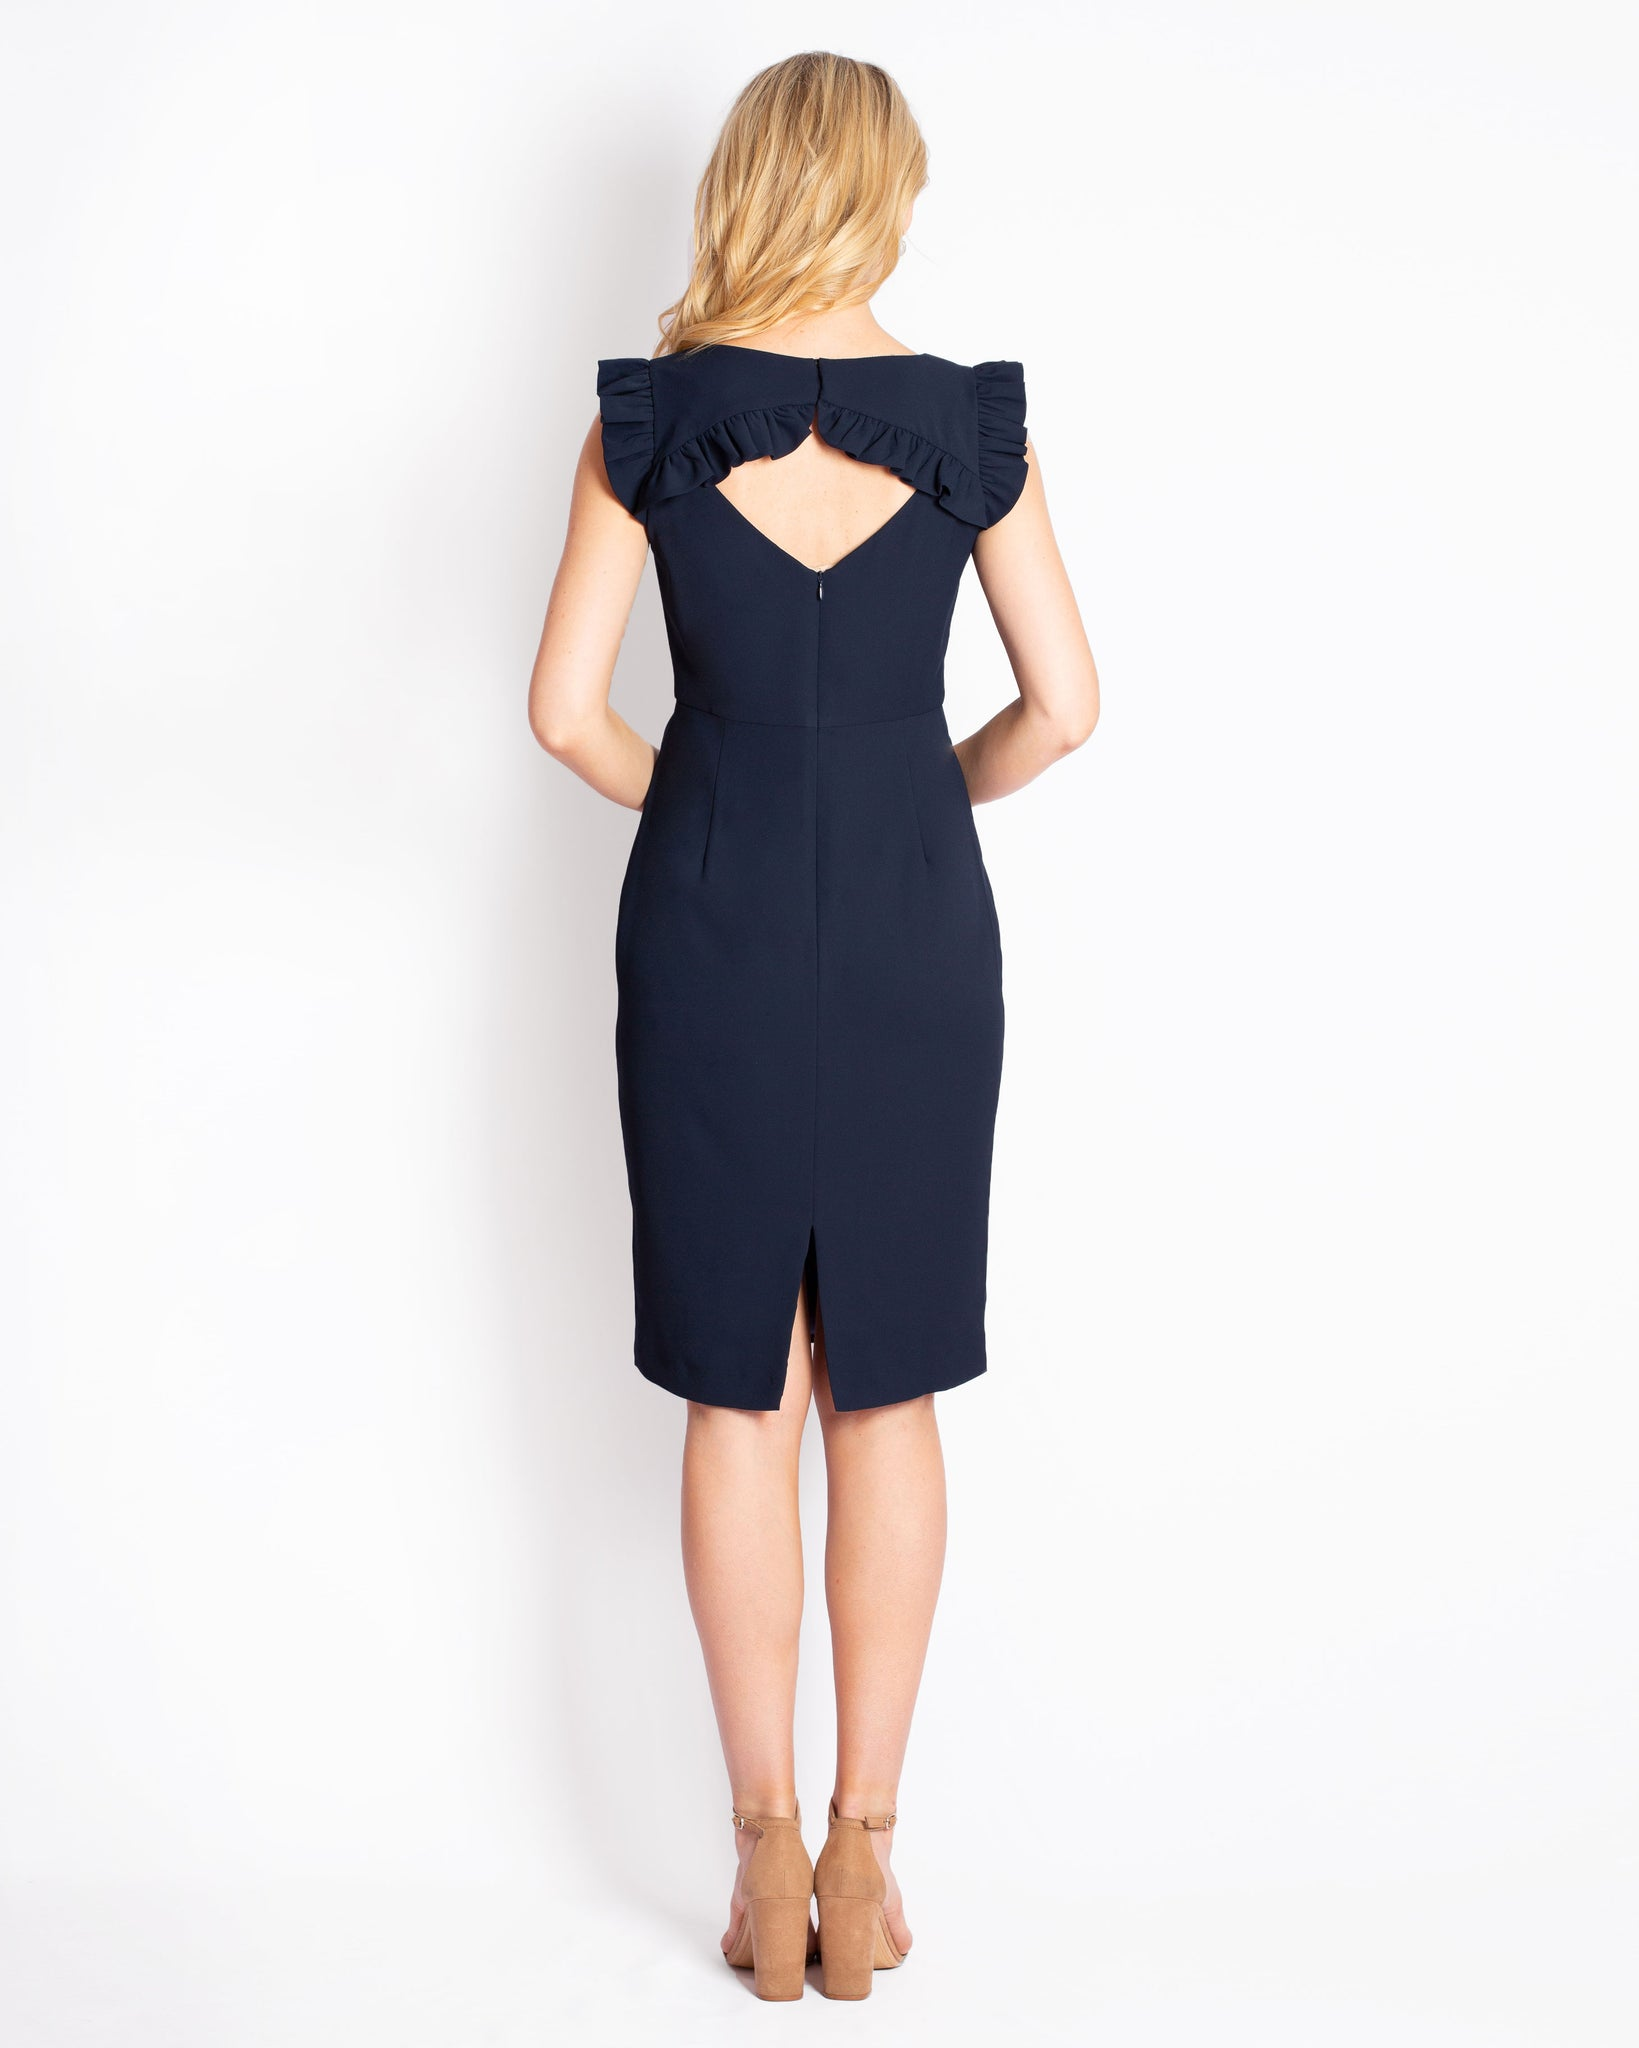 The Genevieve Dress